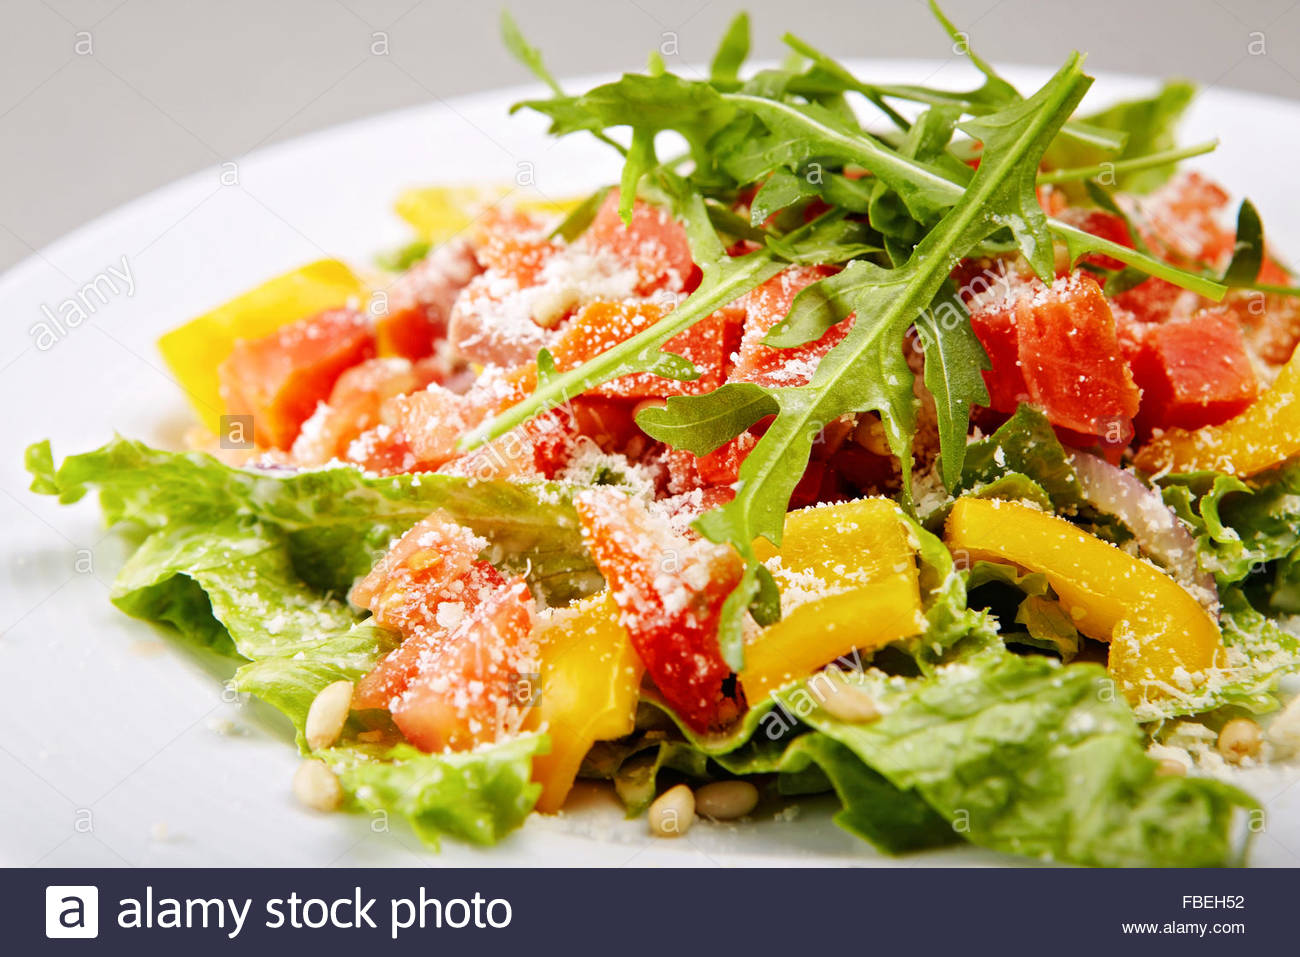 Stylised healthy salad with mixed greens, smoked salmon, tomatoes and paprica. Lots of copyspace - Stock Image